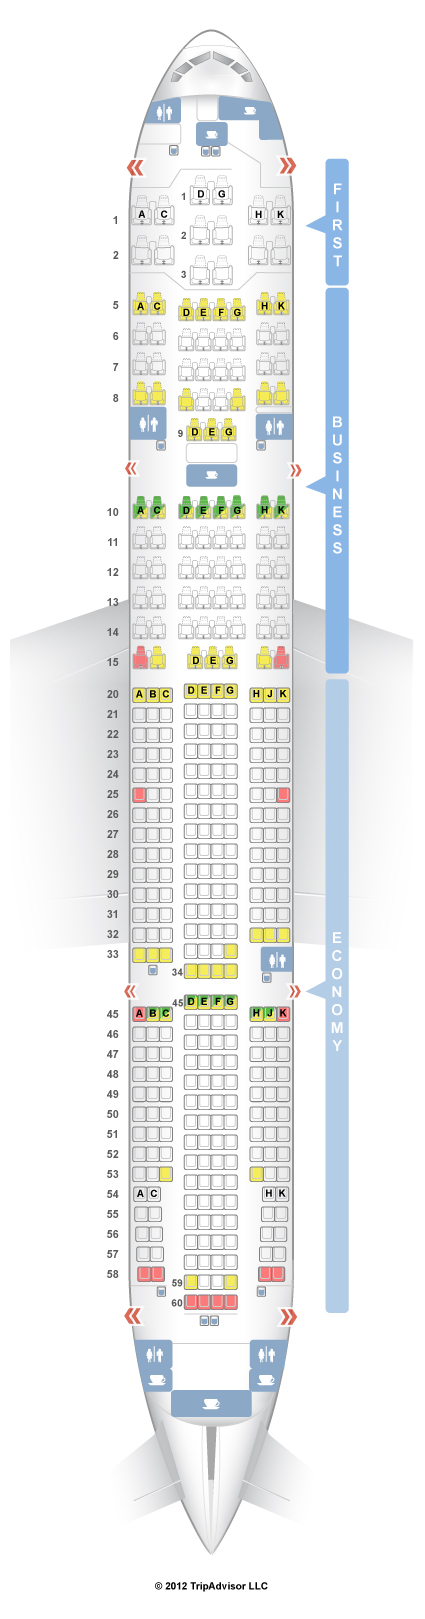 SeatGuru Seat Map Japan Airlines - SeatGuru